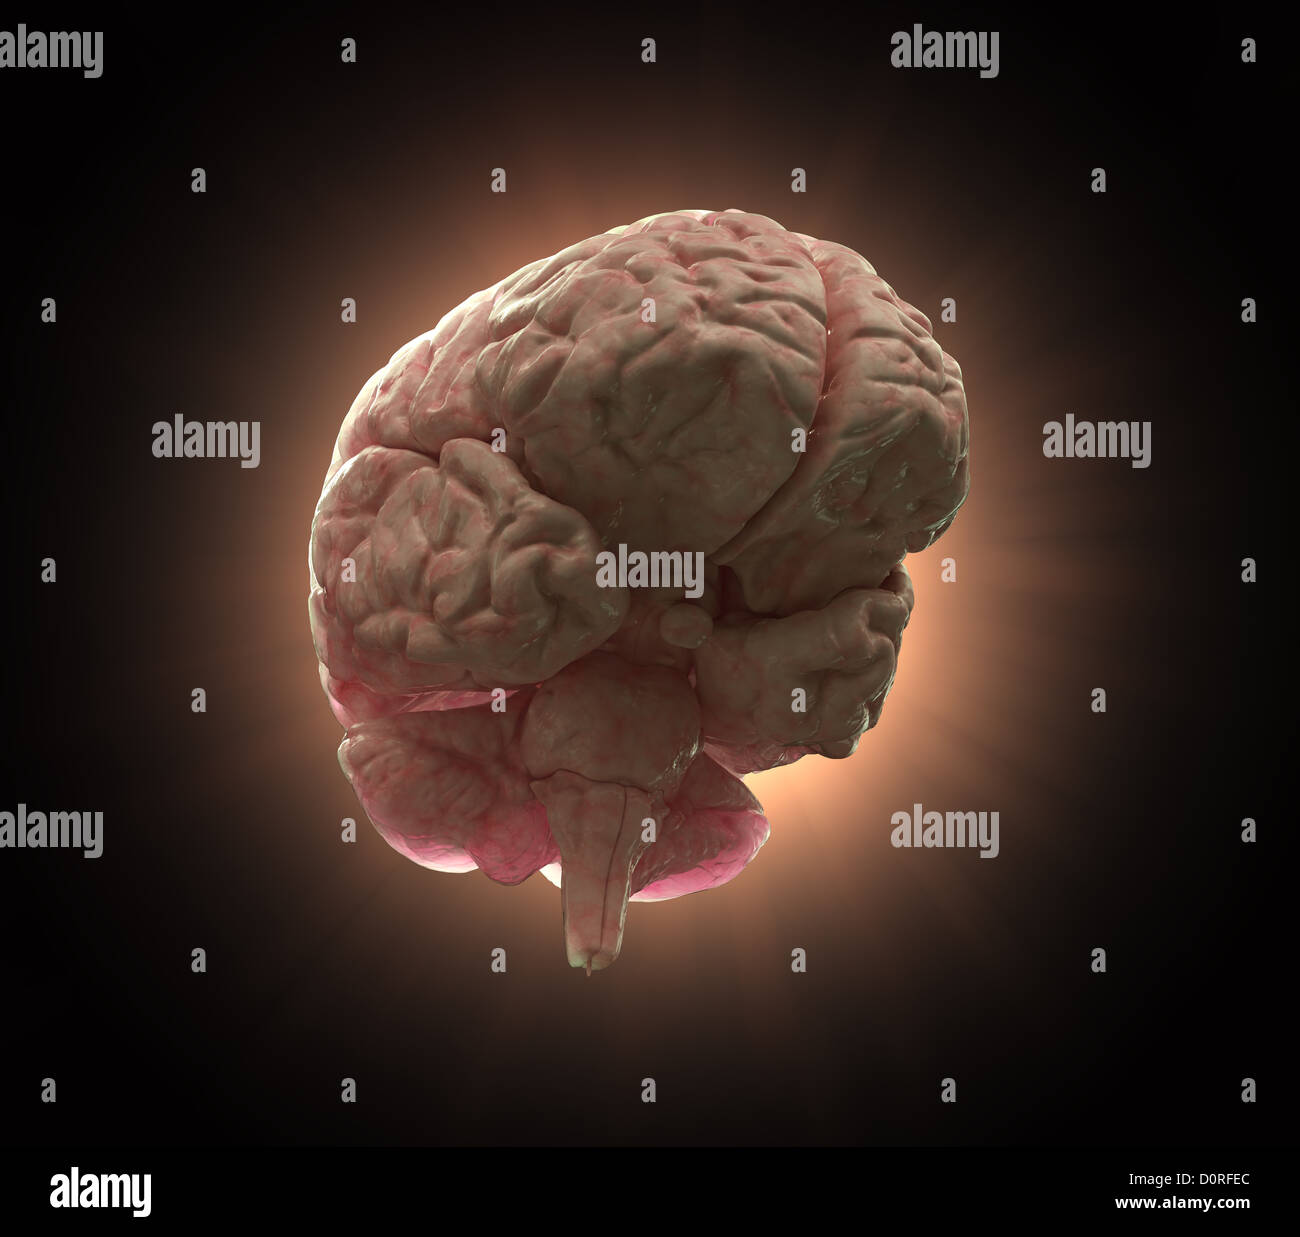 Background illustration du cerveau humain Photo Stock